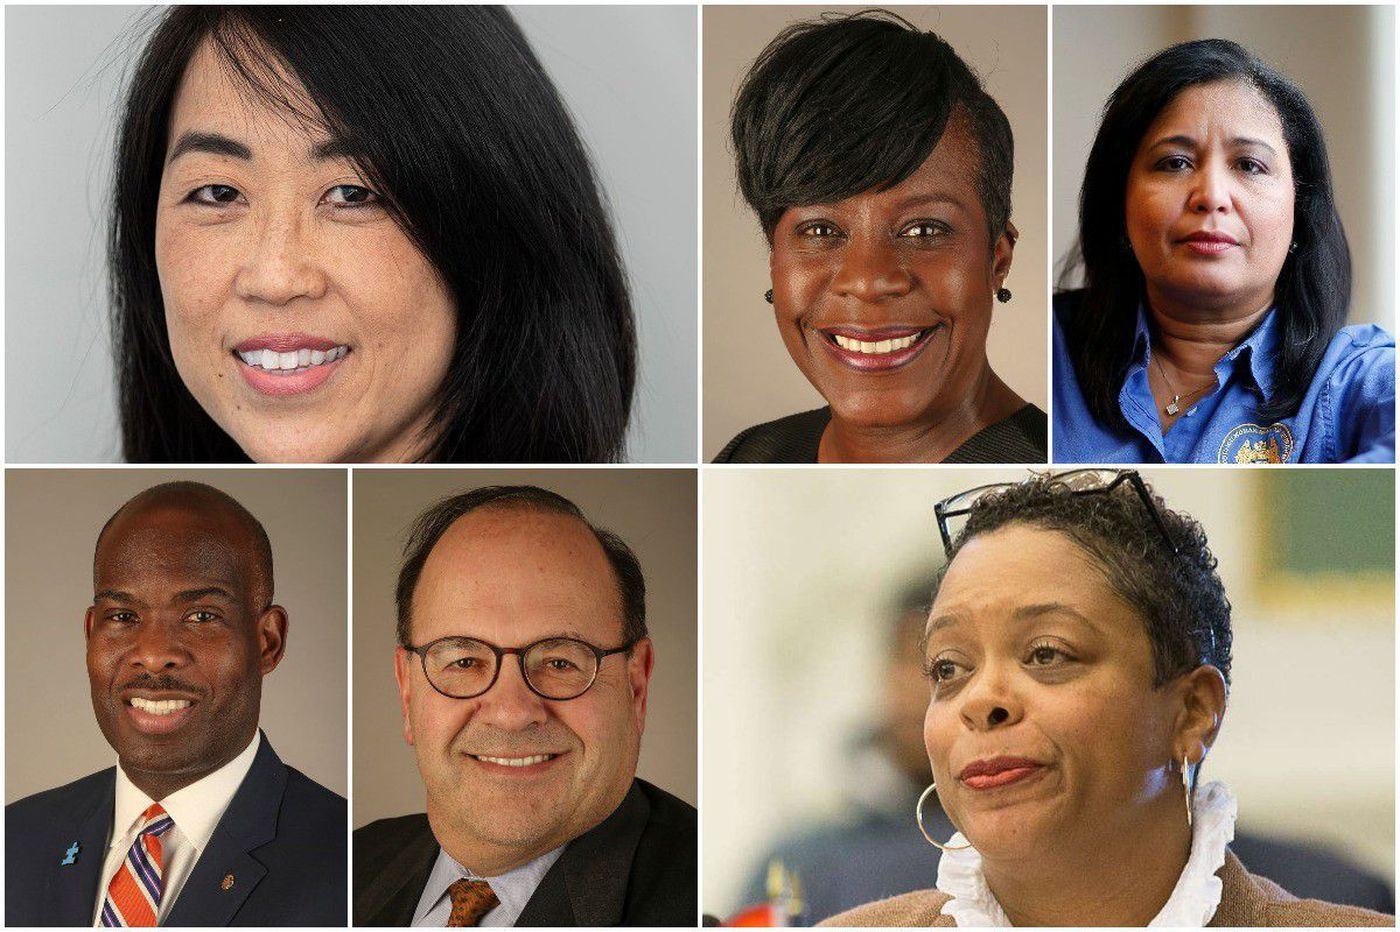 The next Philly mayor's race is in 2023 but the money race has already started